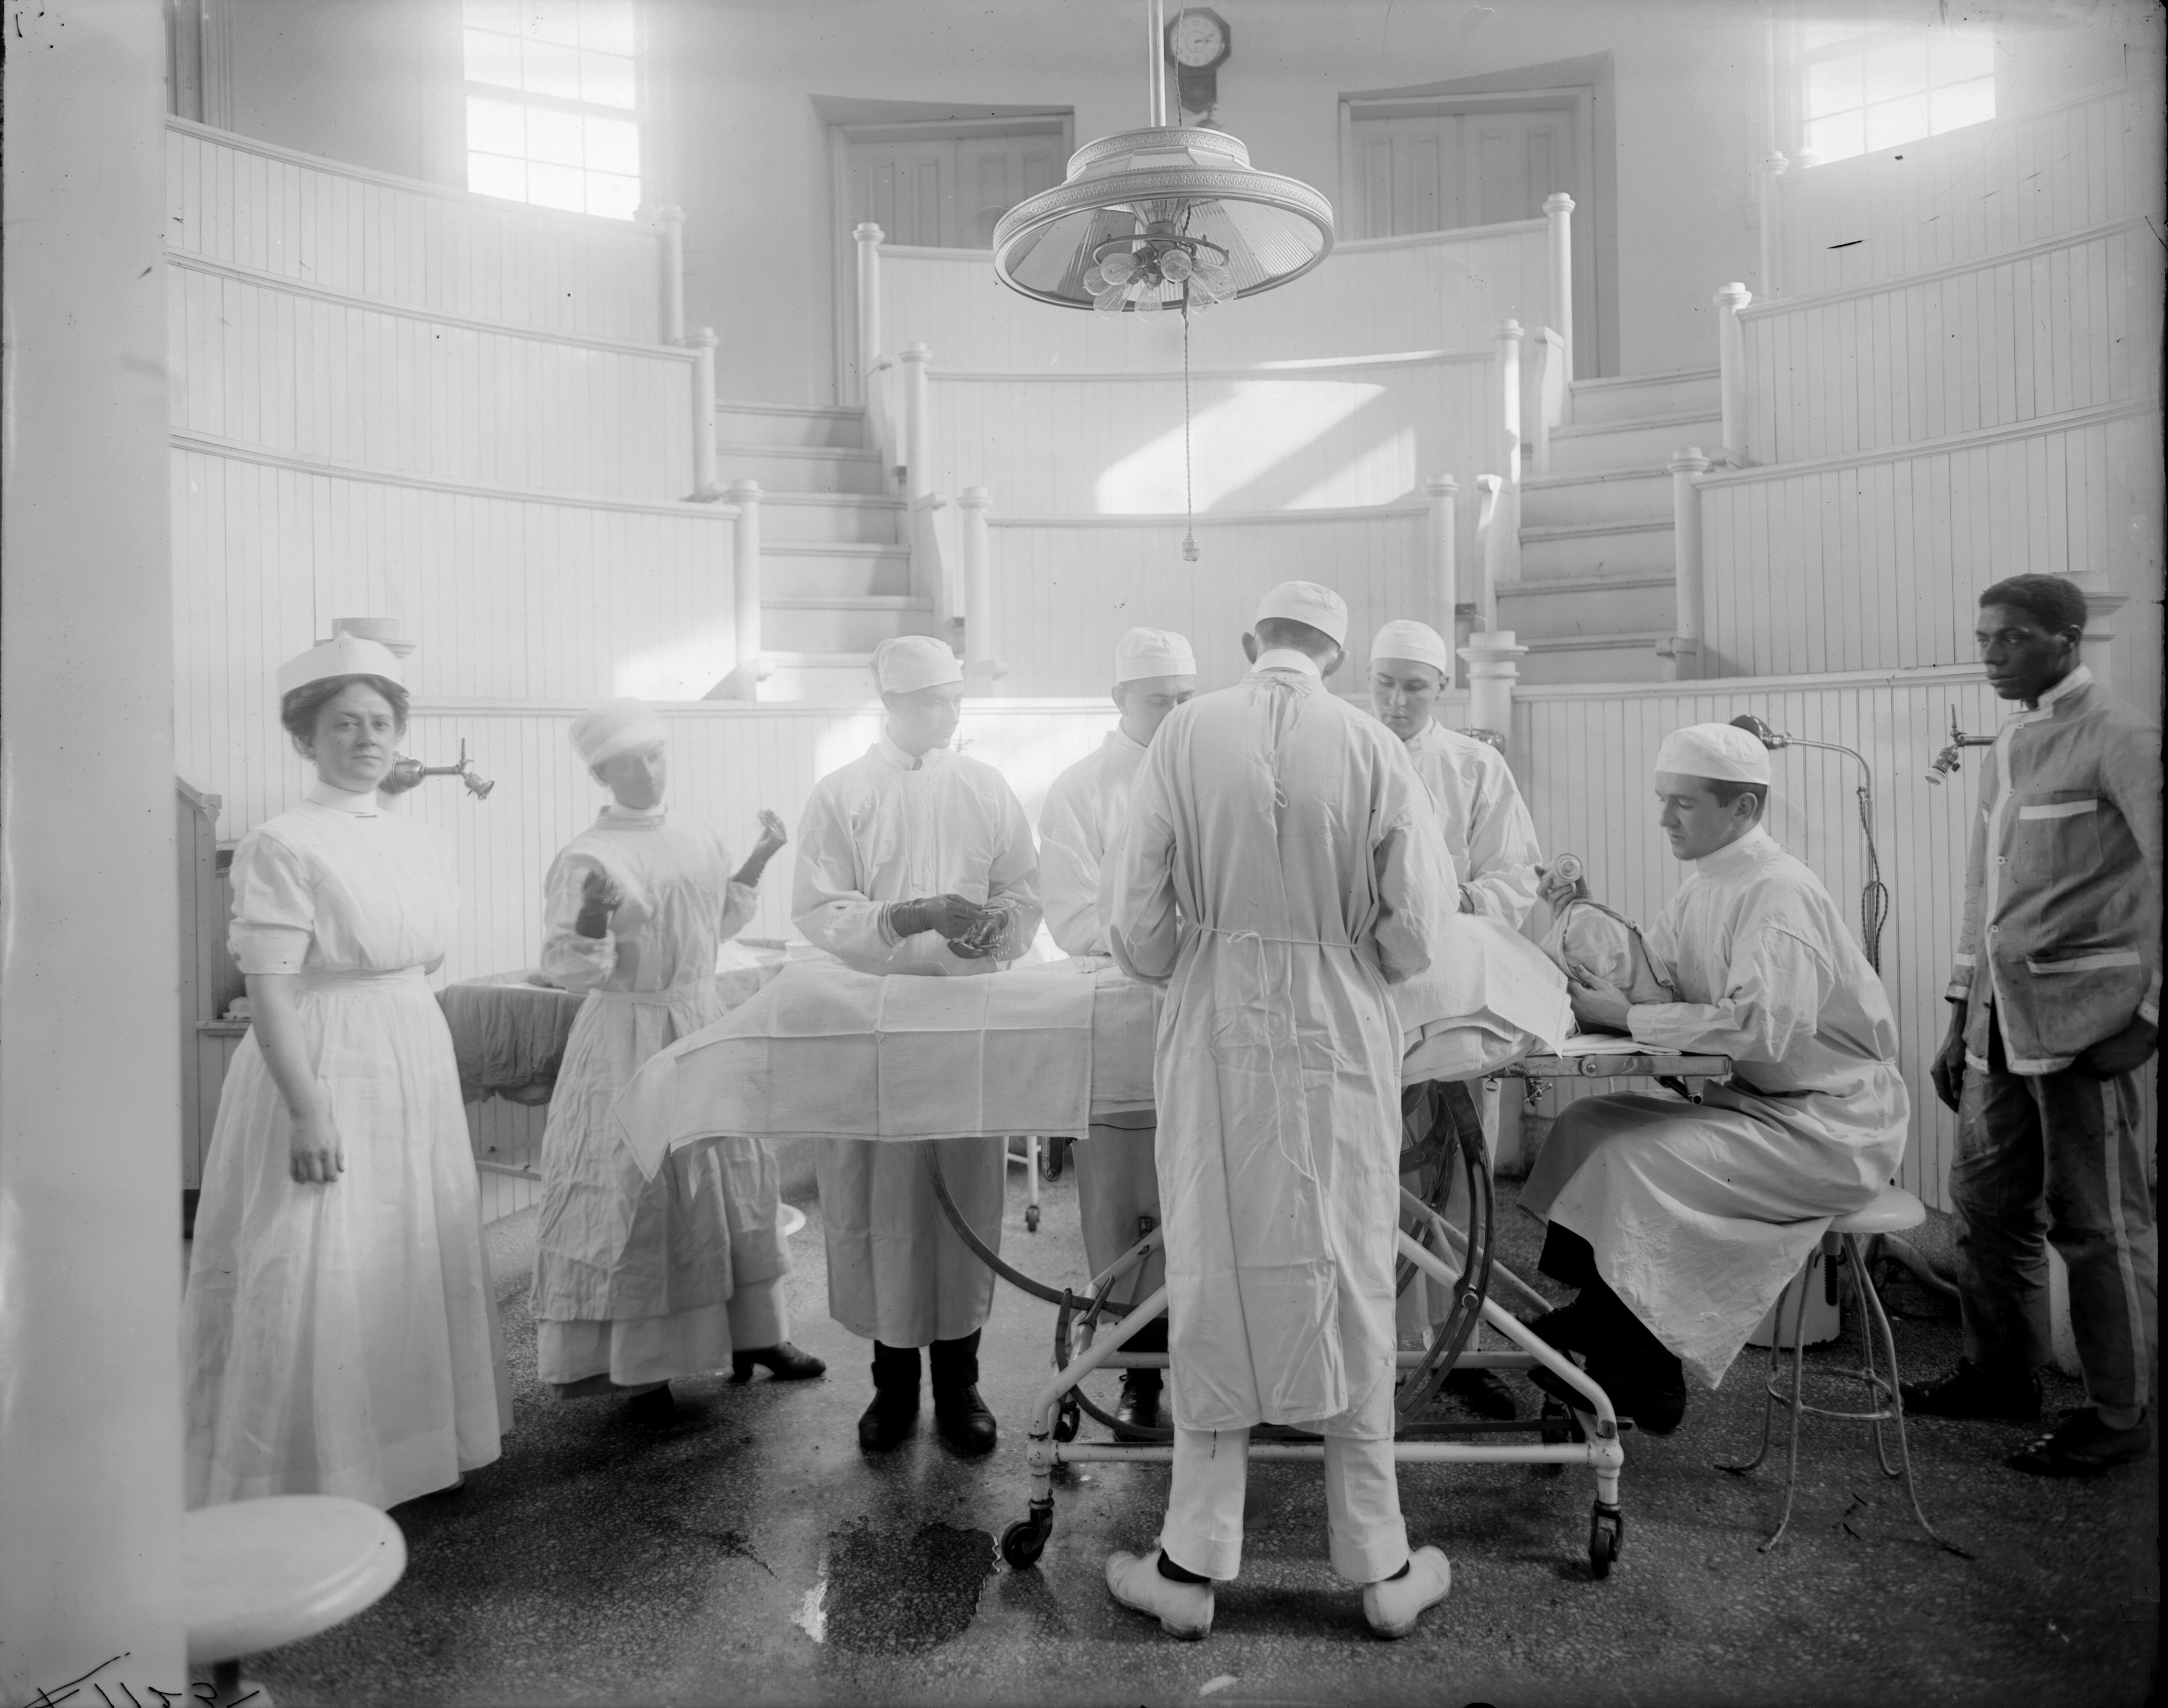 Surgical Amphitheater, University of Virginia Hospital